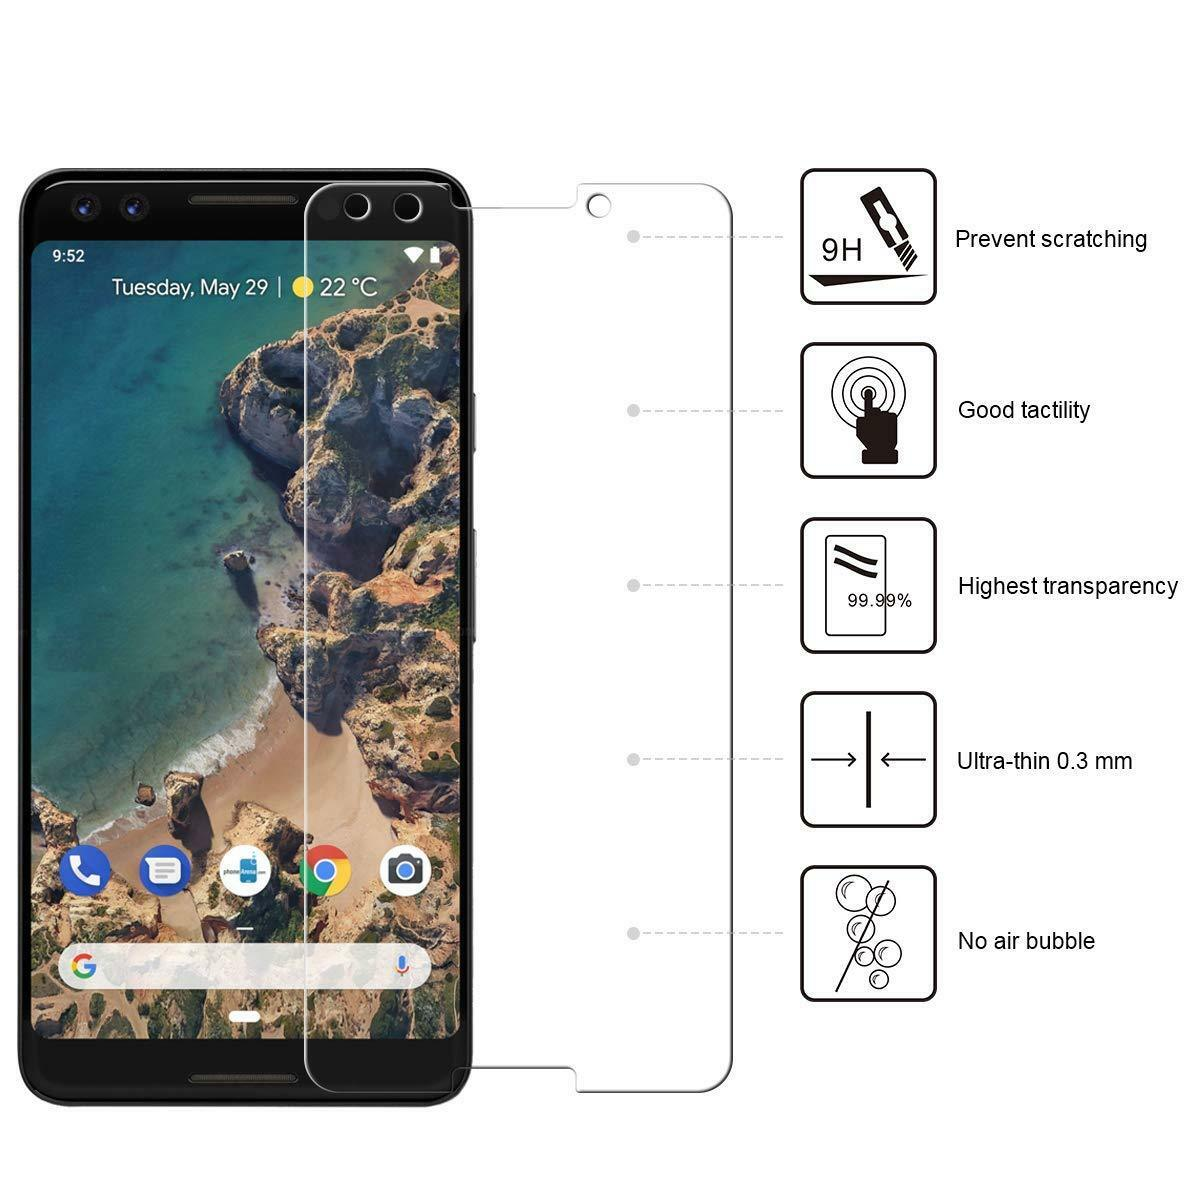 GGP-TG: Premium Tempered Glass Screen Protector for Google Pixel